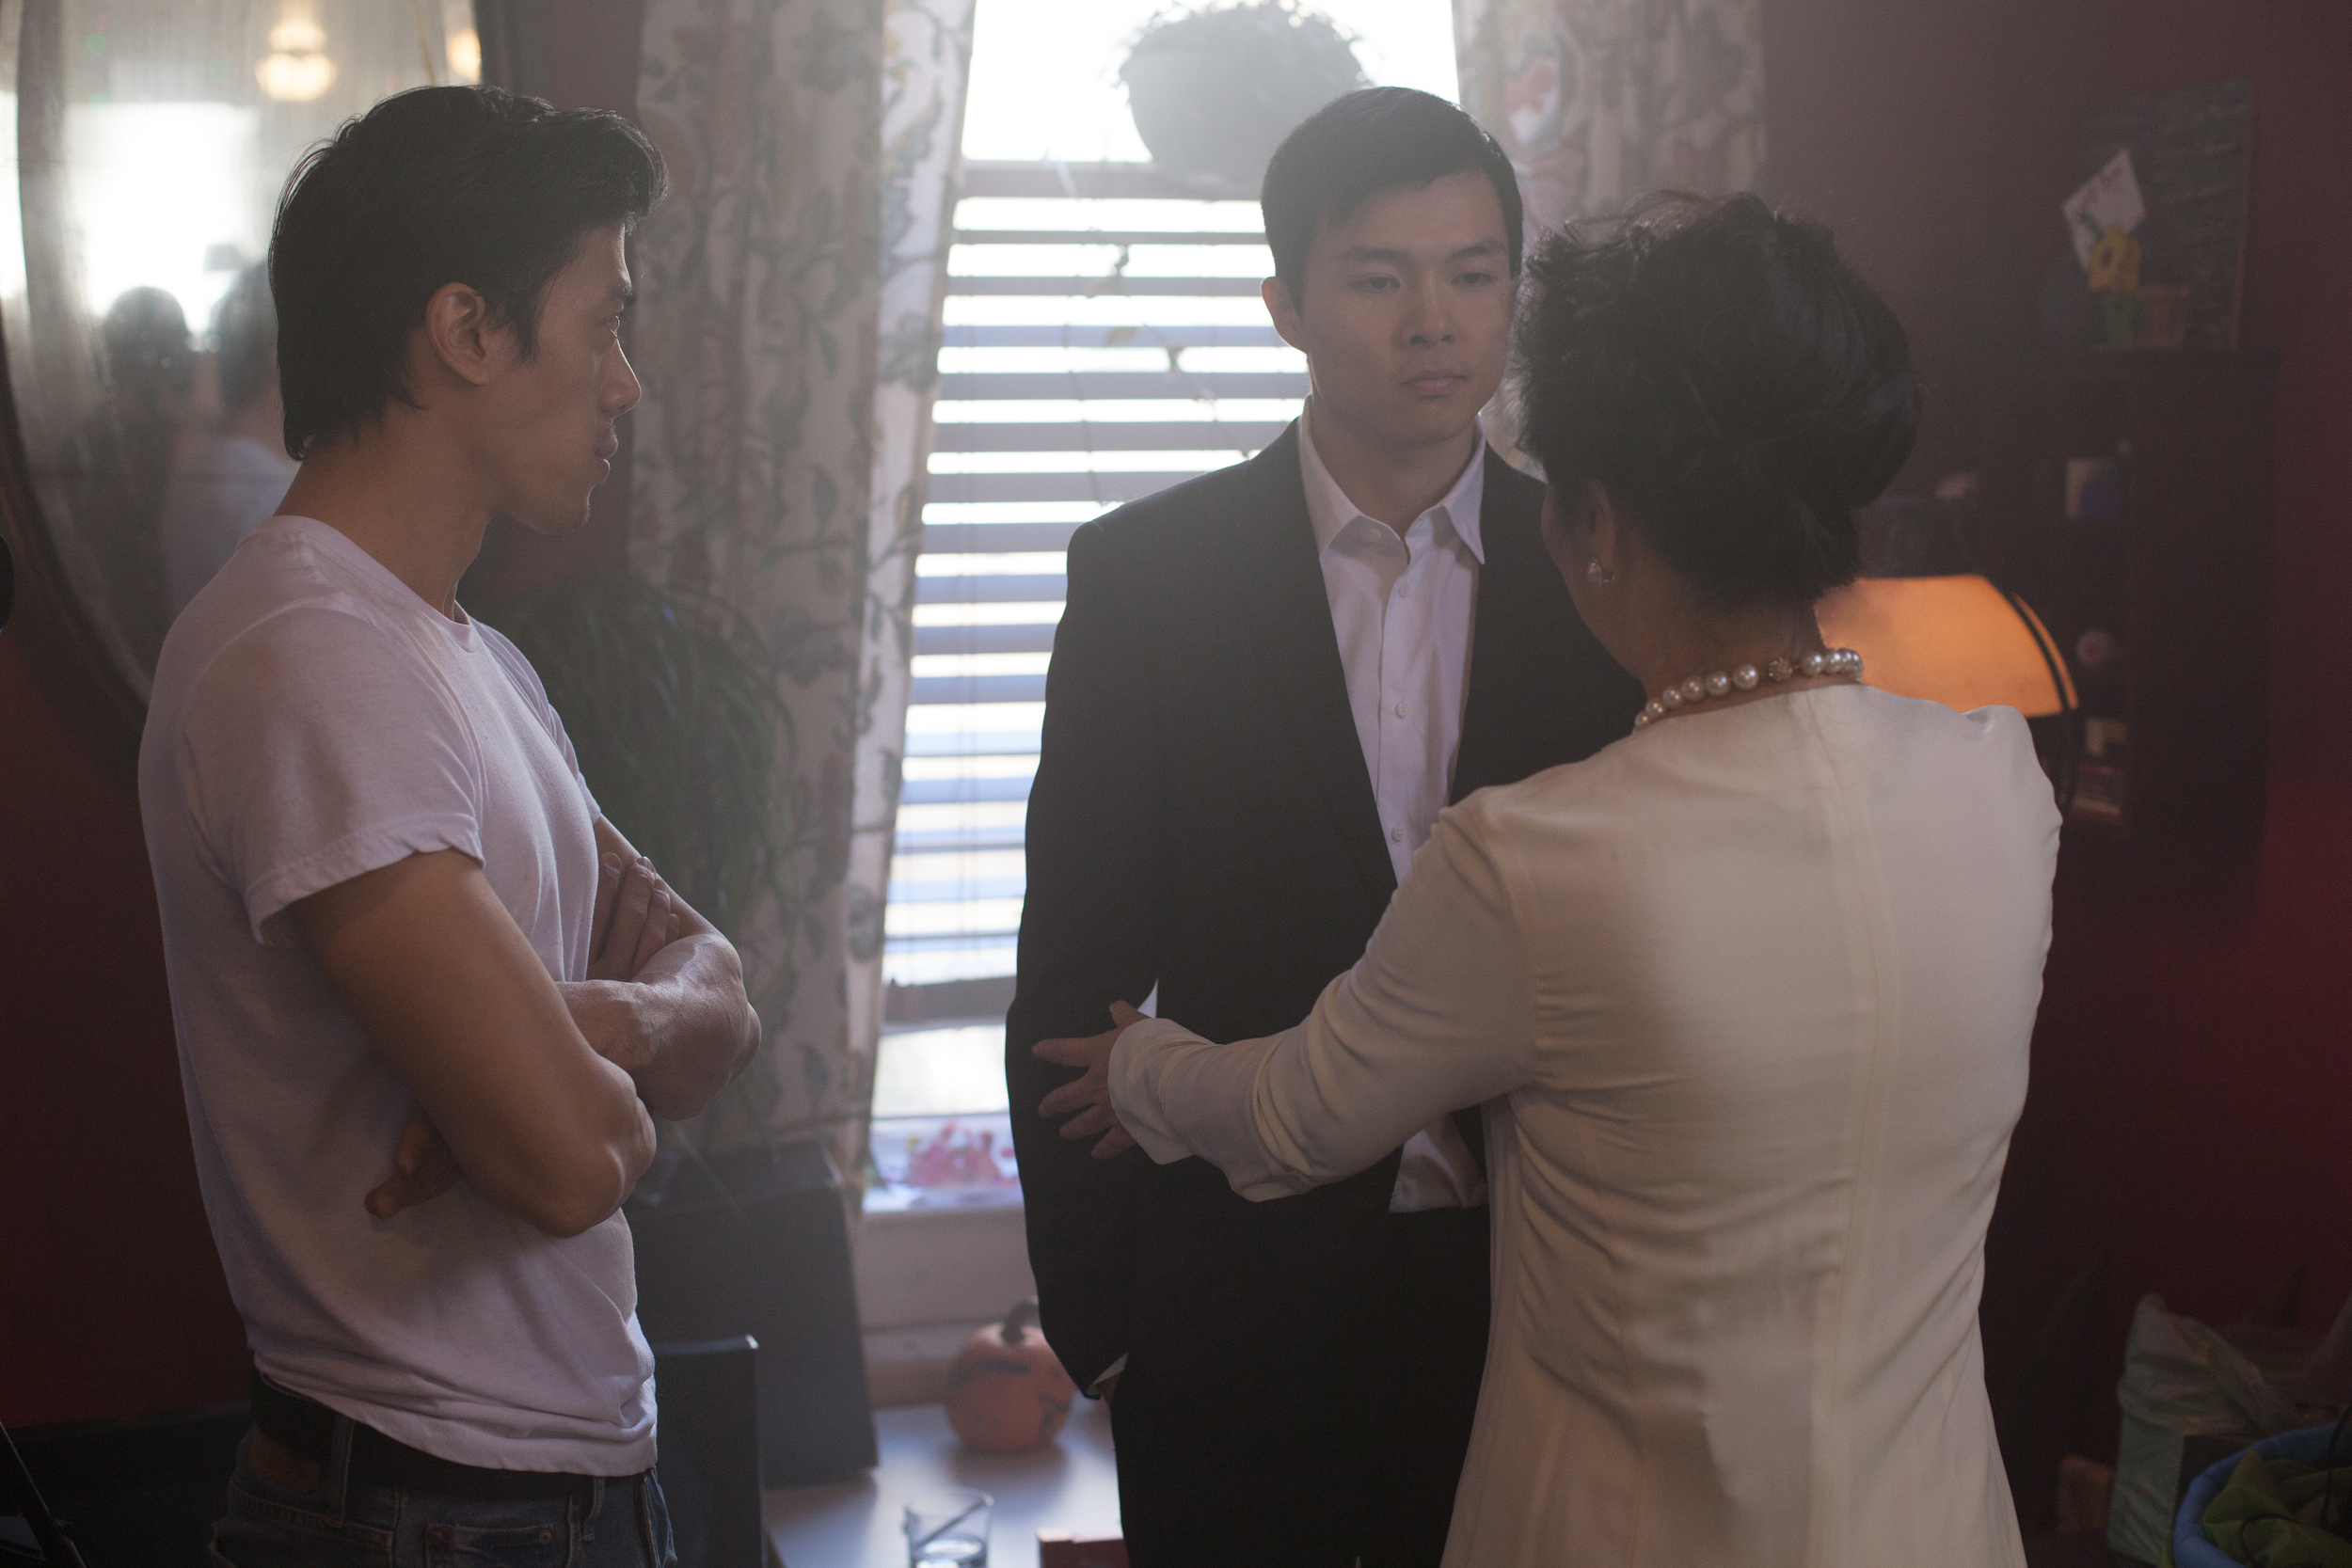 Director Leon Le rehearsing a scene with actors Zilong Zee and Wendy Huang before a take.